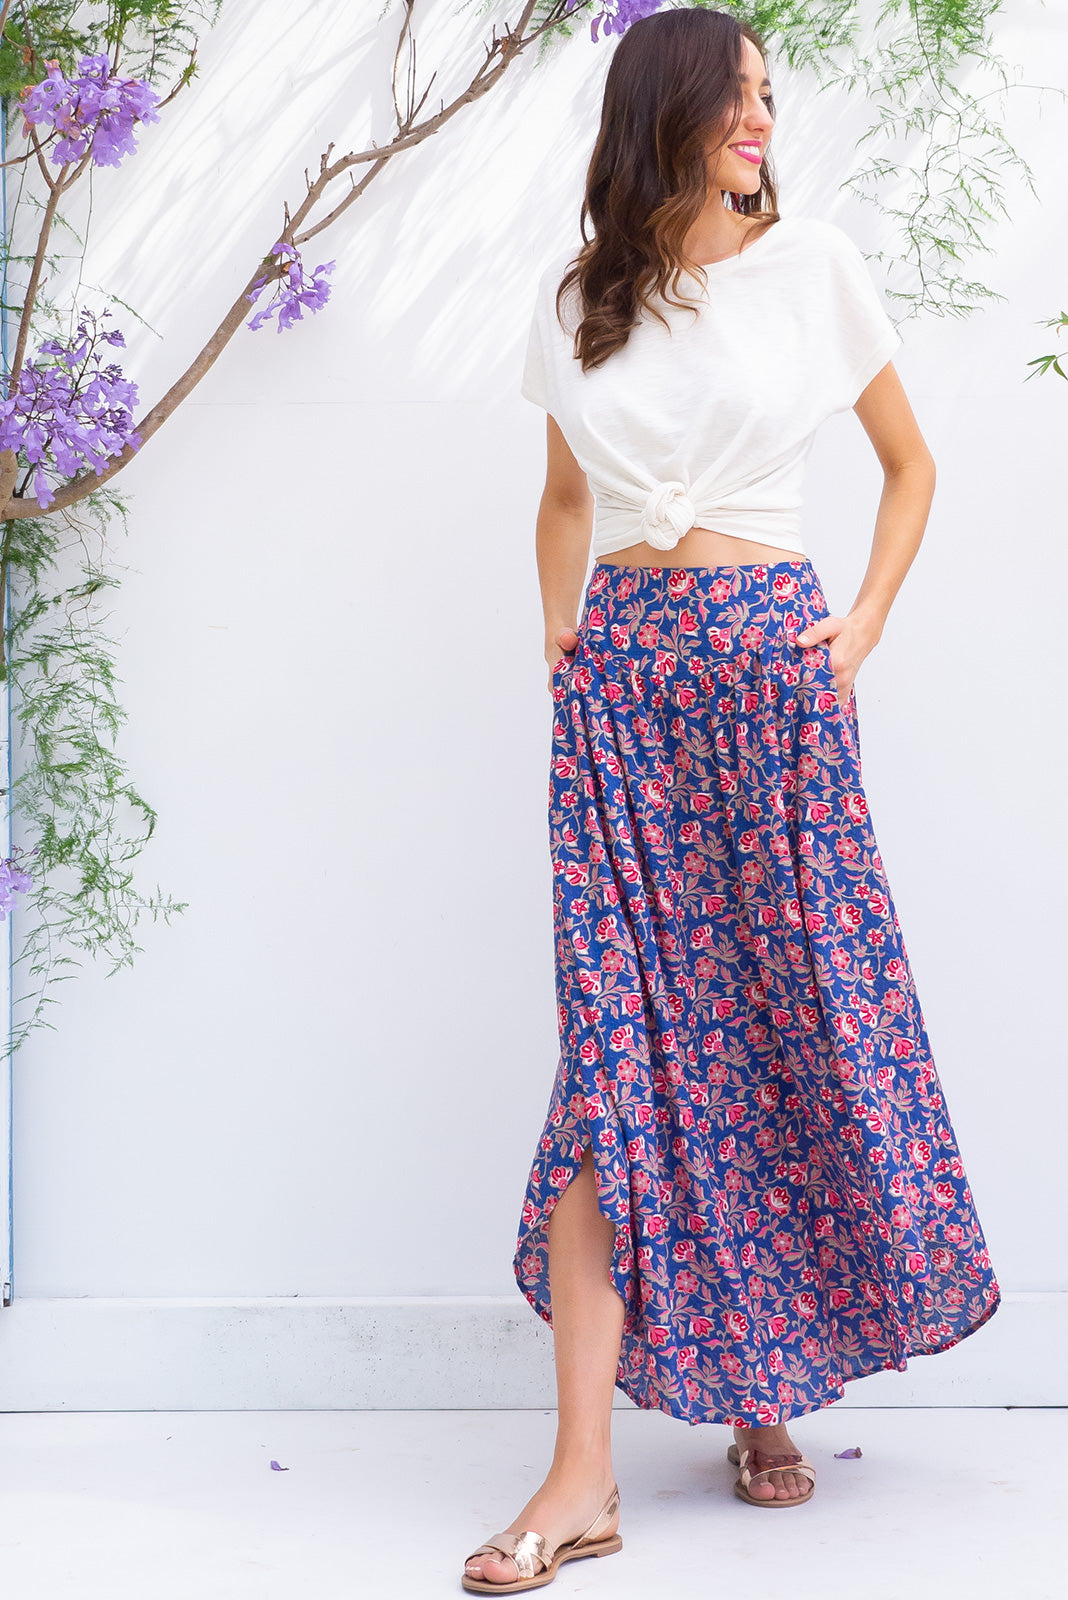 Sails Faraway Blue Maxi Skirt with a soft ruched elastic back and pockets in a gorgeous lapis blue and bright pink floral print on a cotton rayon blend fabric